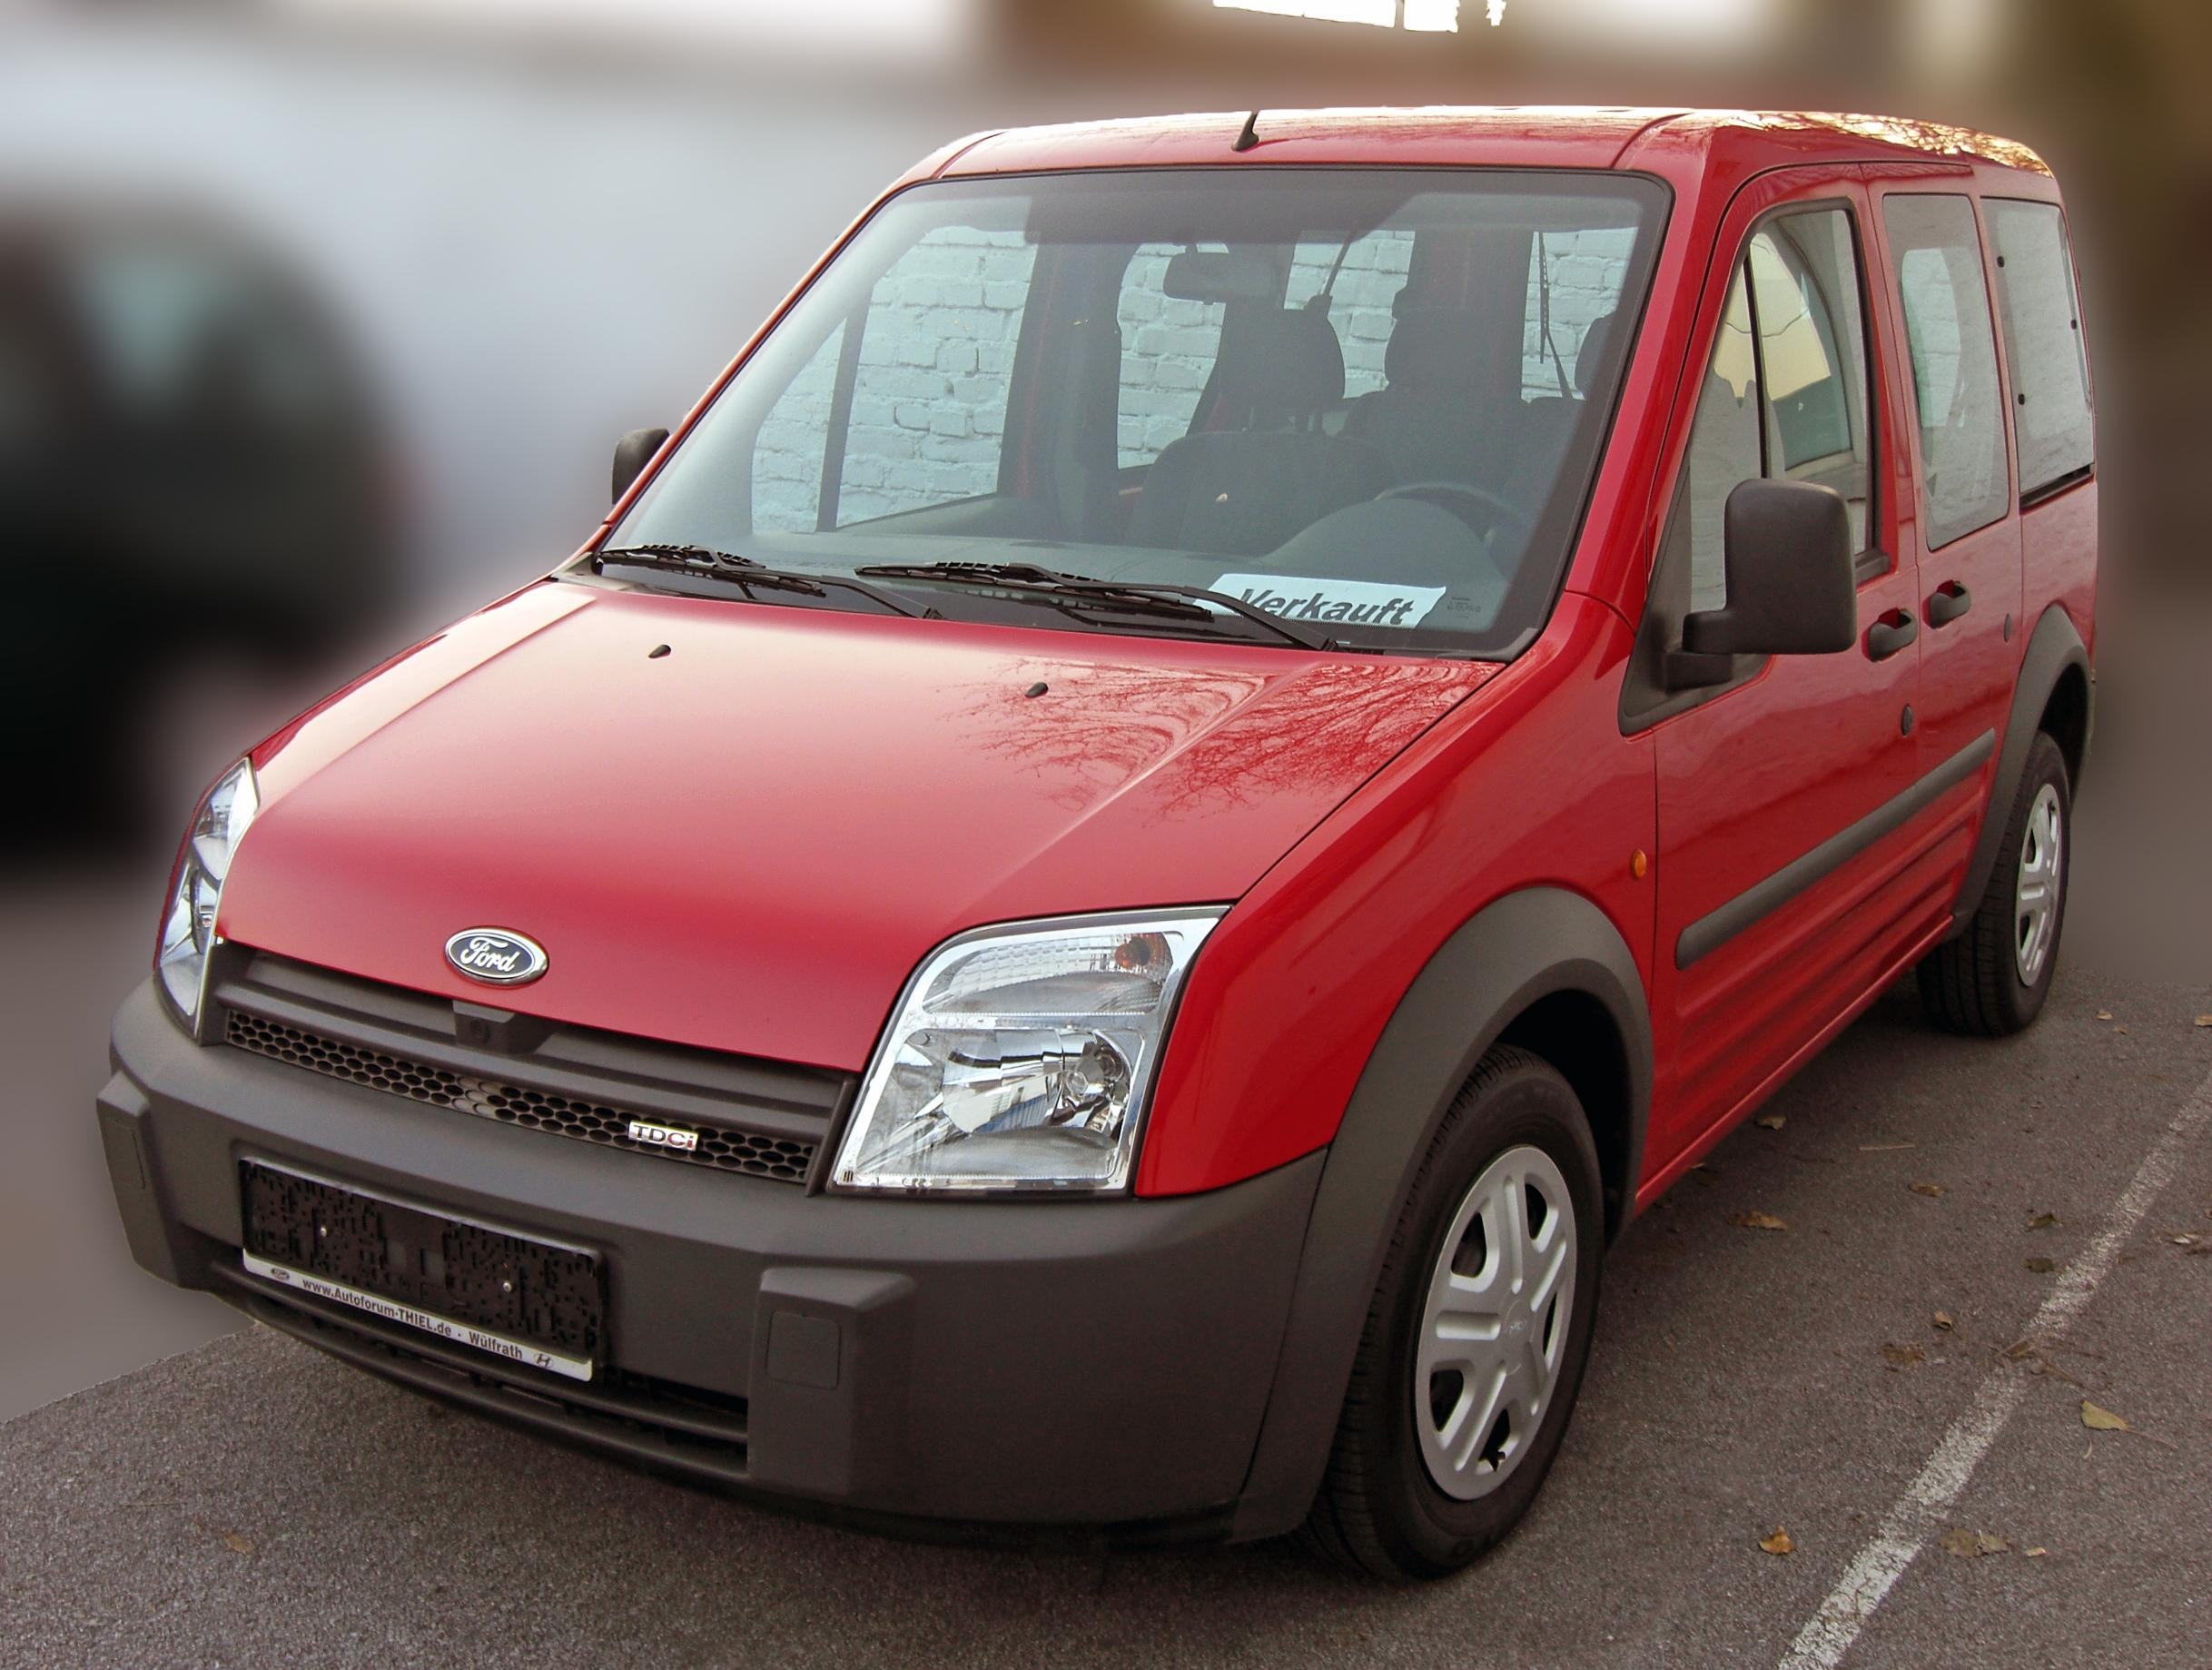 Ford Transit Connect Wagon >> 2004 Ford Transit connect – pictures, information and specs - Auto-Database.com